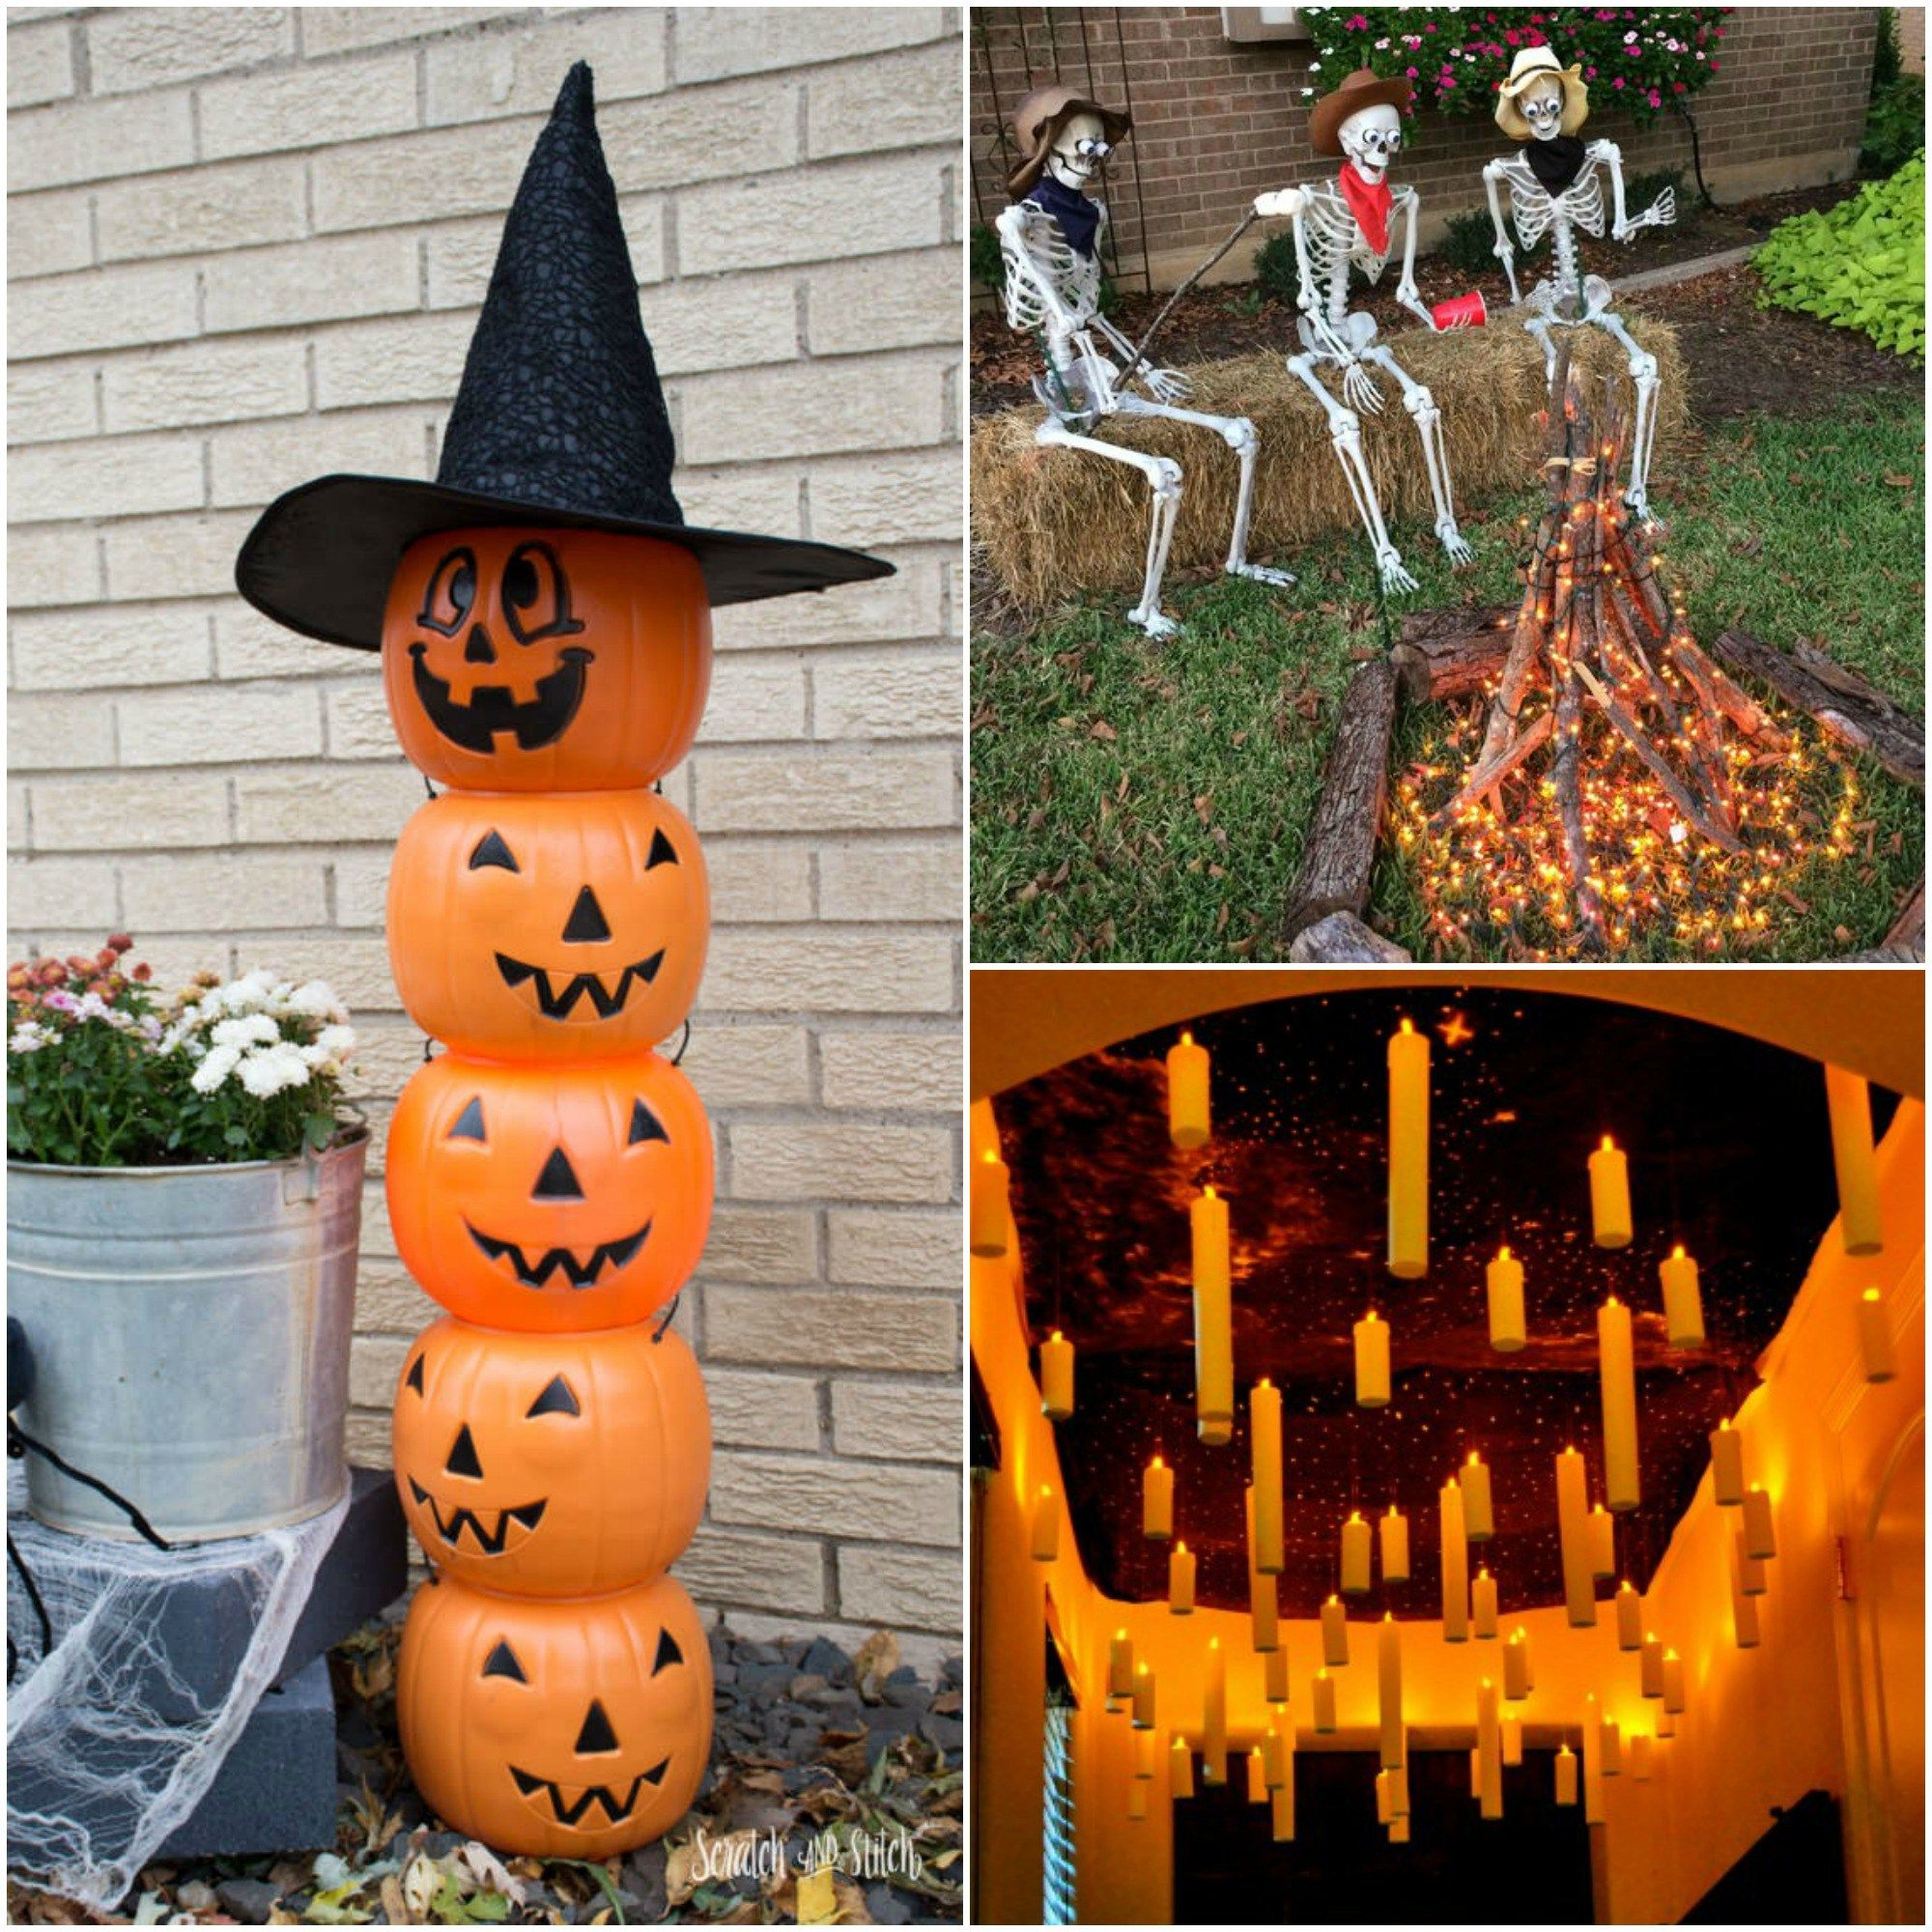 From topical to classic, we've got you covered! These front yard ideas for Halloween are so freaking awesome! All your neighbors … | Diy ...